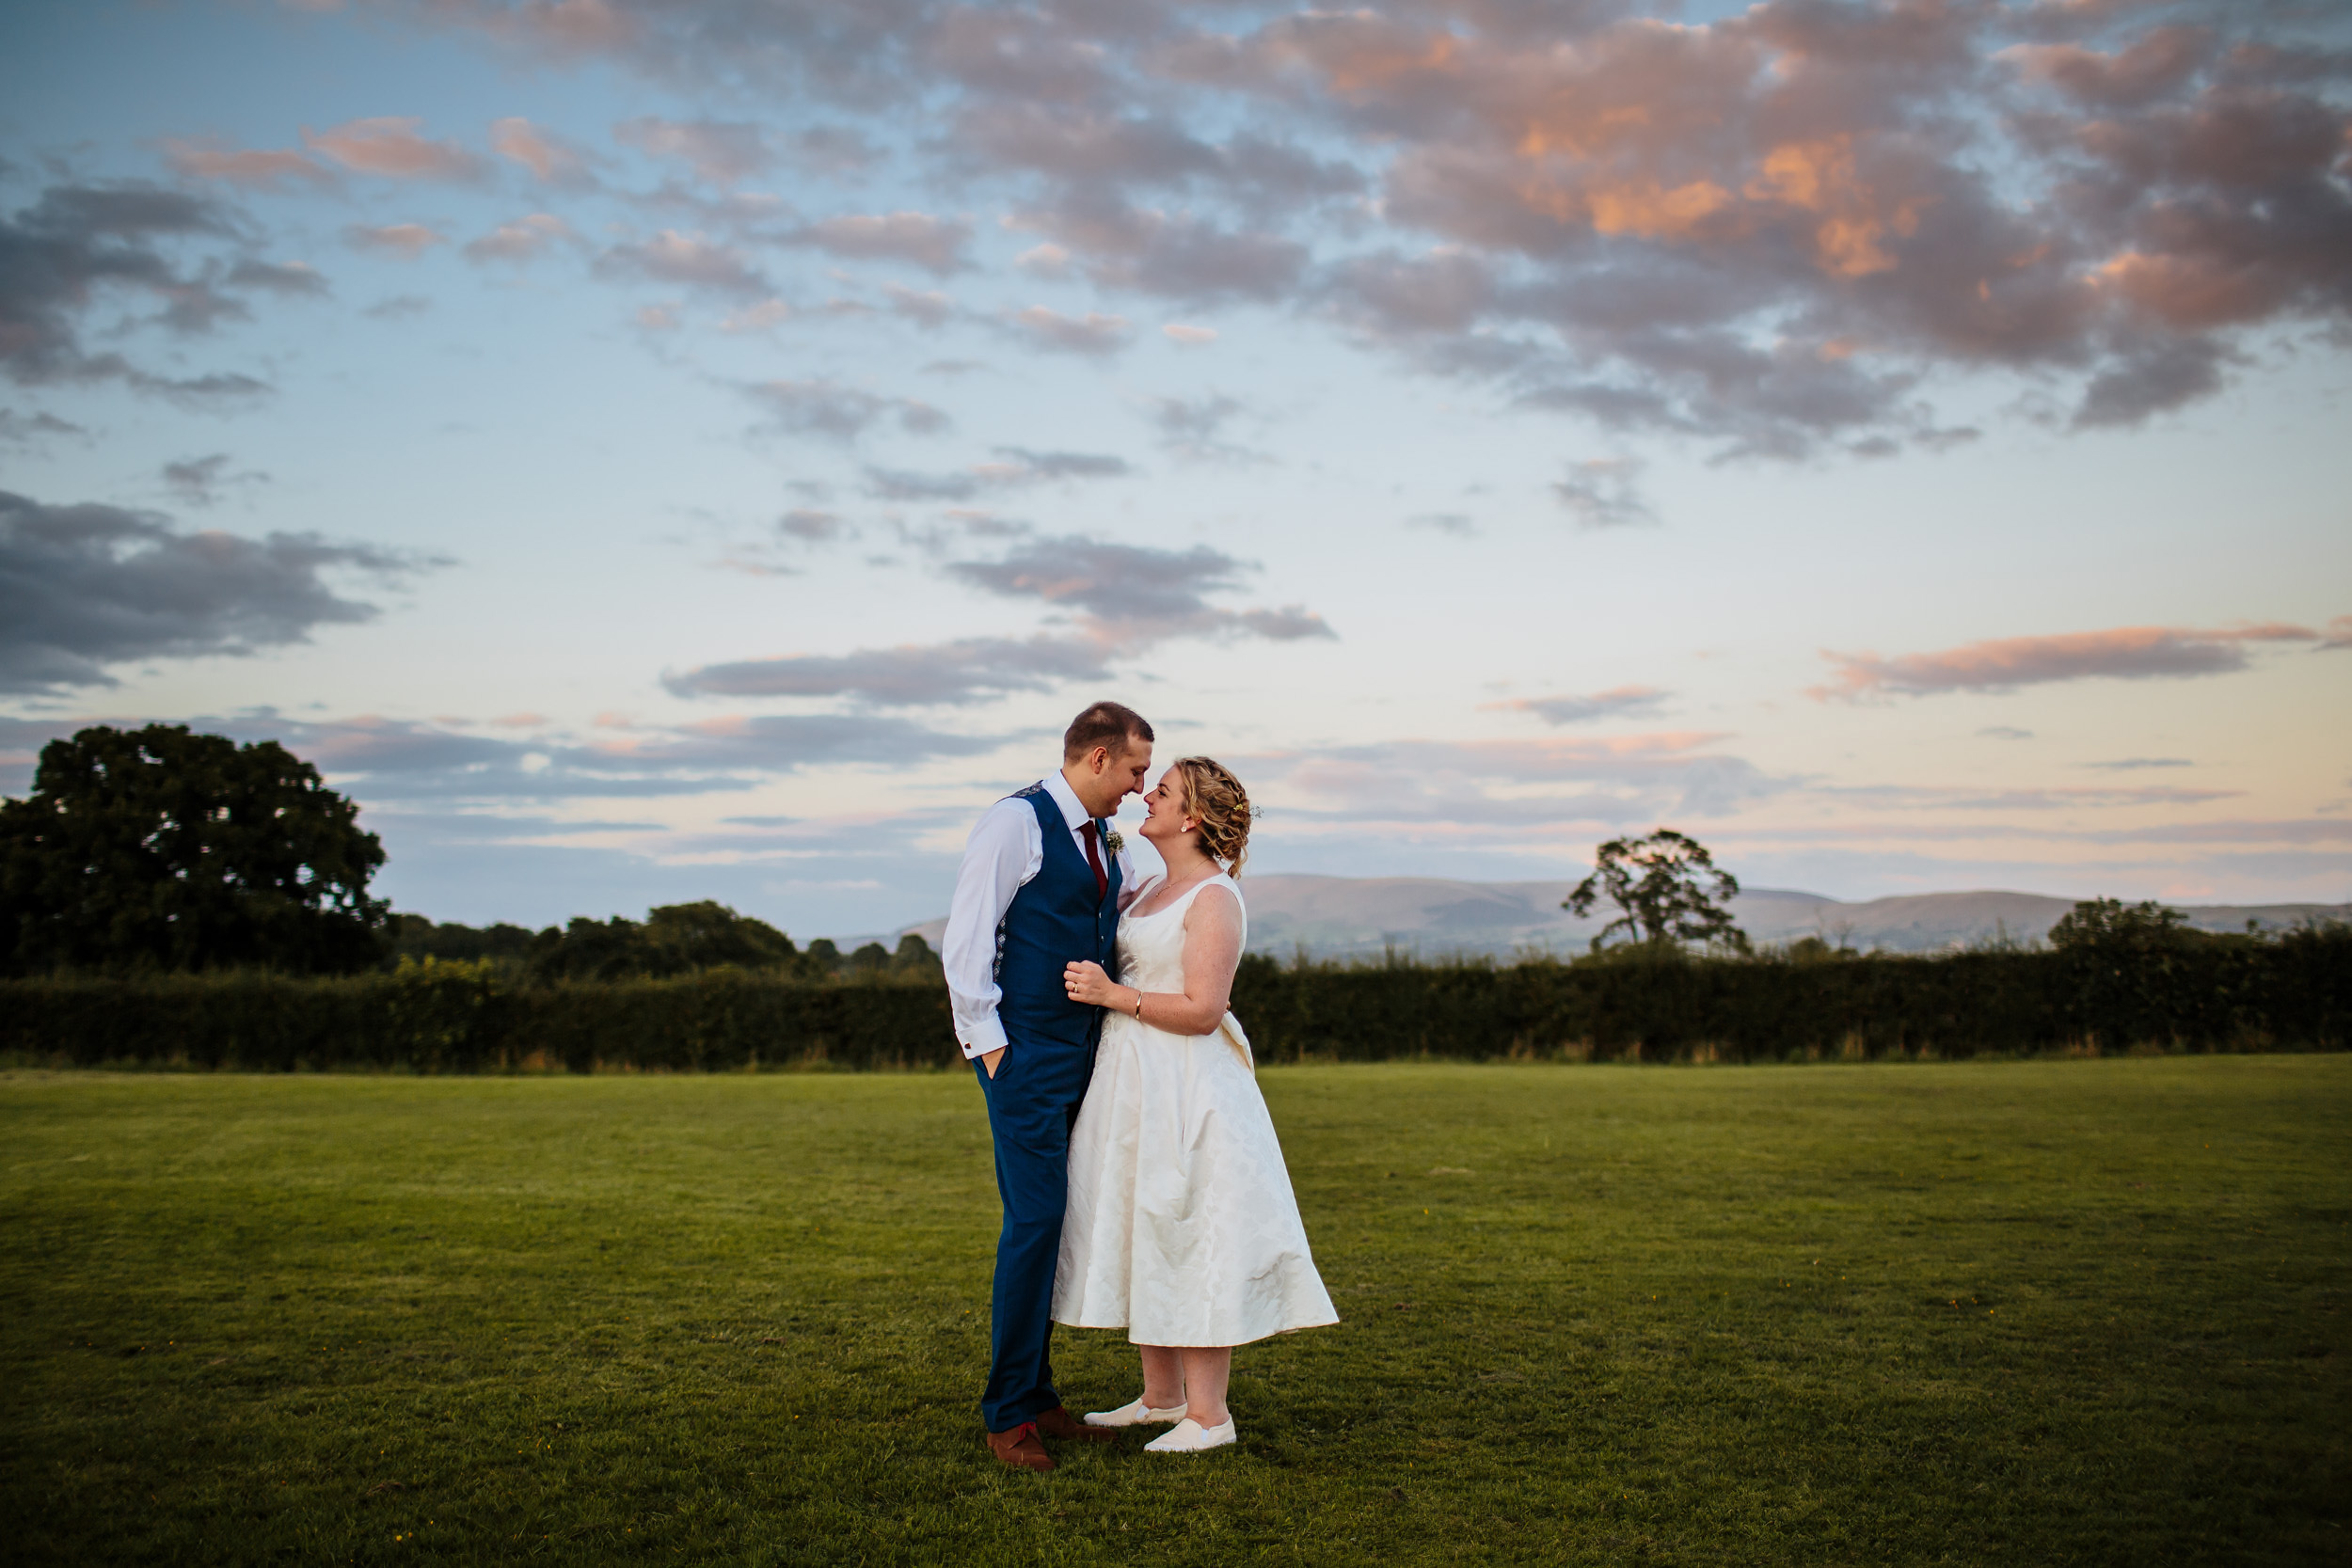 Bride and groom pose for a photograph on their wedding day in Lancashire